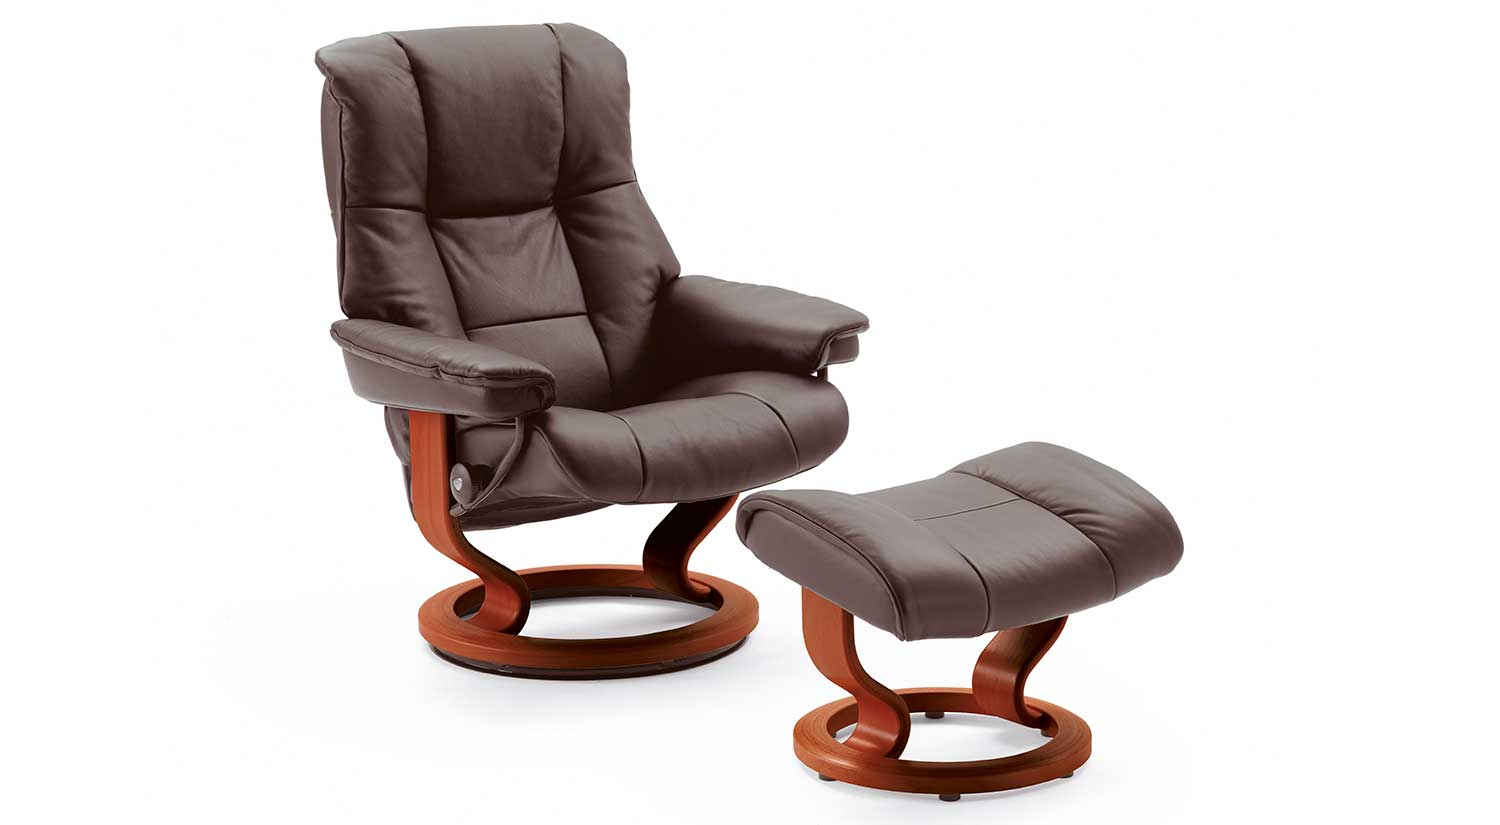 Ekornes Stressless Mayfair Family Ekornes Stressless Jazz Family Ekornes Stressless Metro High